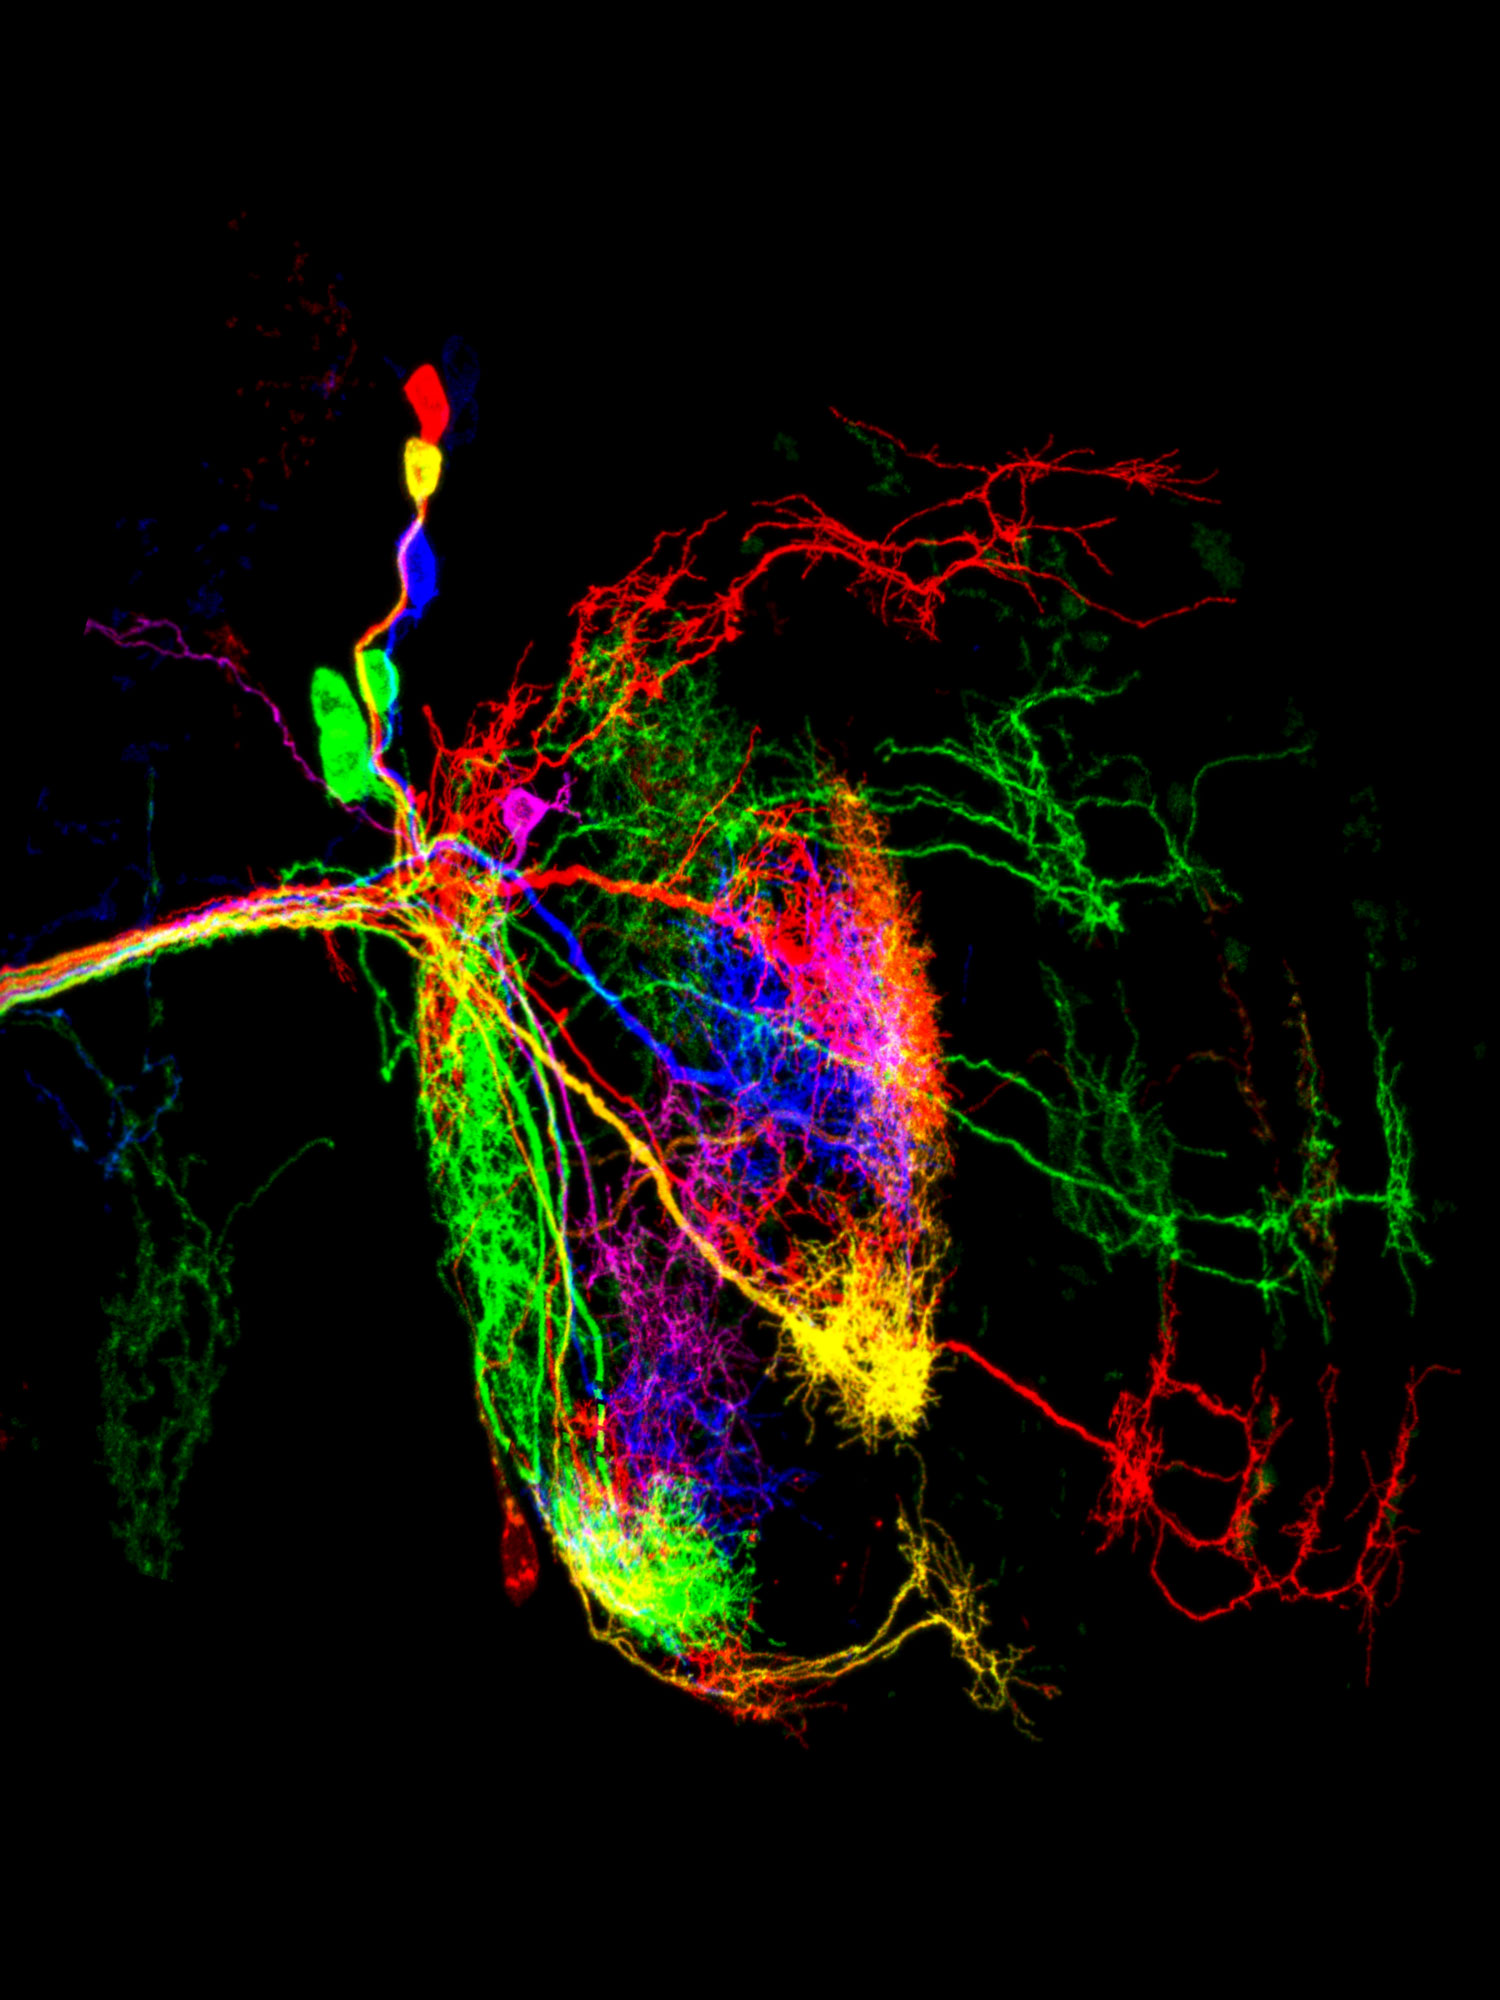 Micrograph of dorsal cluster neurons from a fruit fly, with different neurons glowing in various colors.